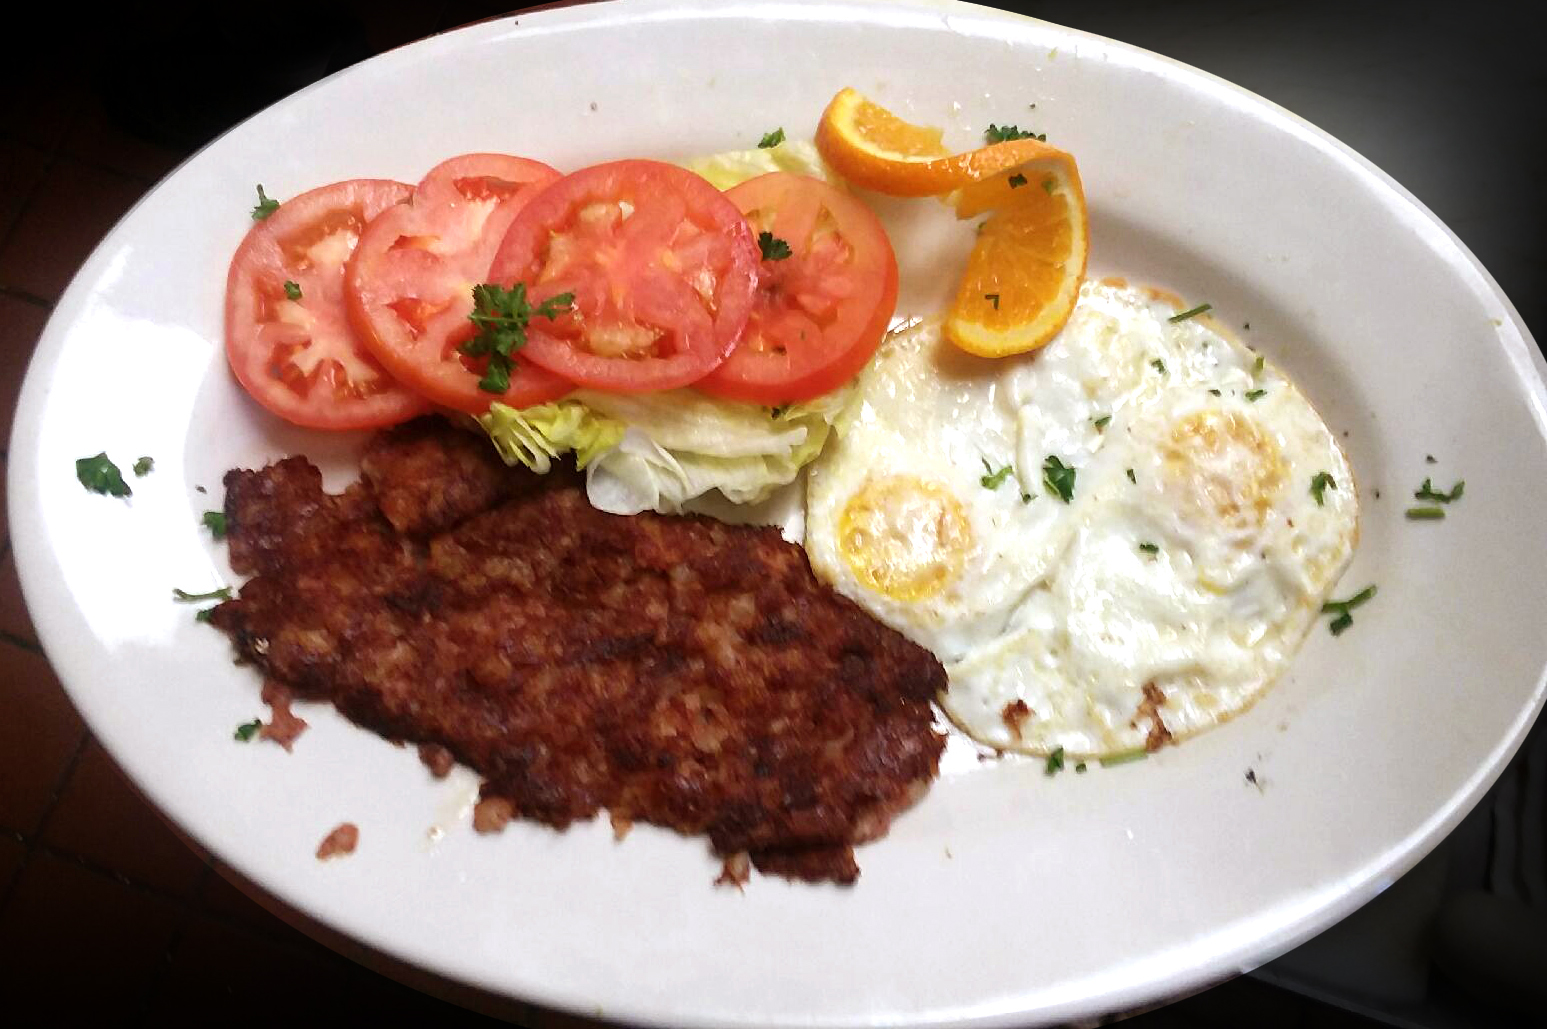 Corn Beef Hash with 2 Eggs and Sliced Tomato